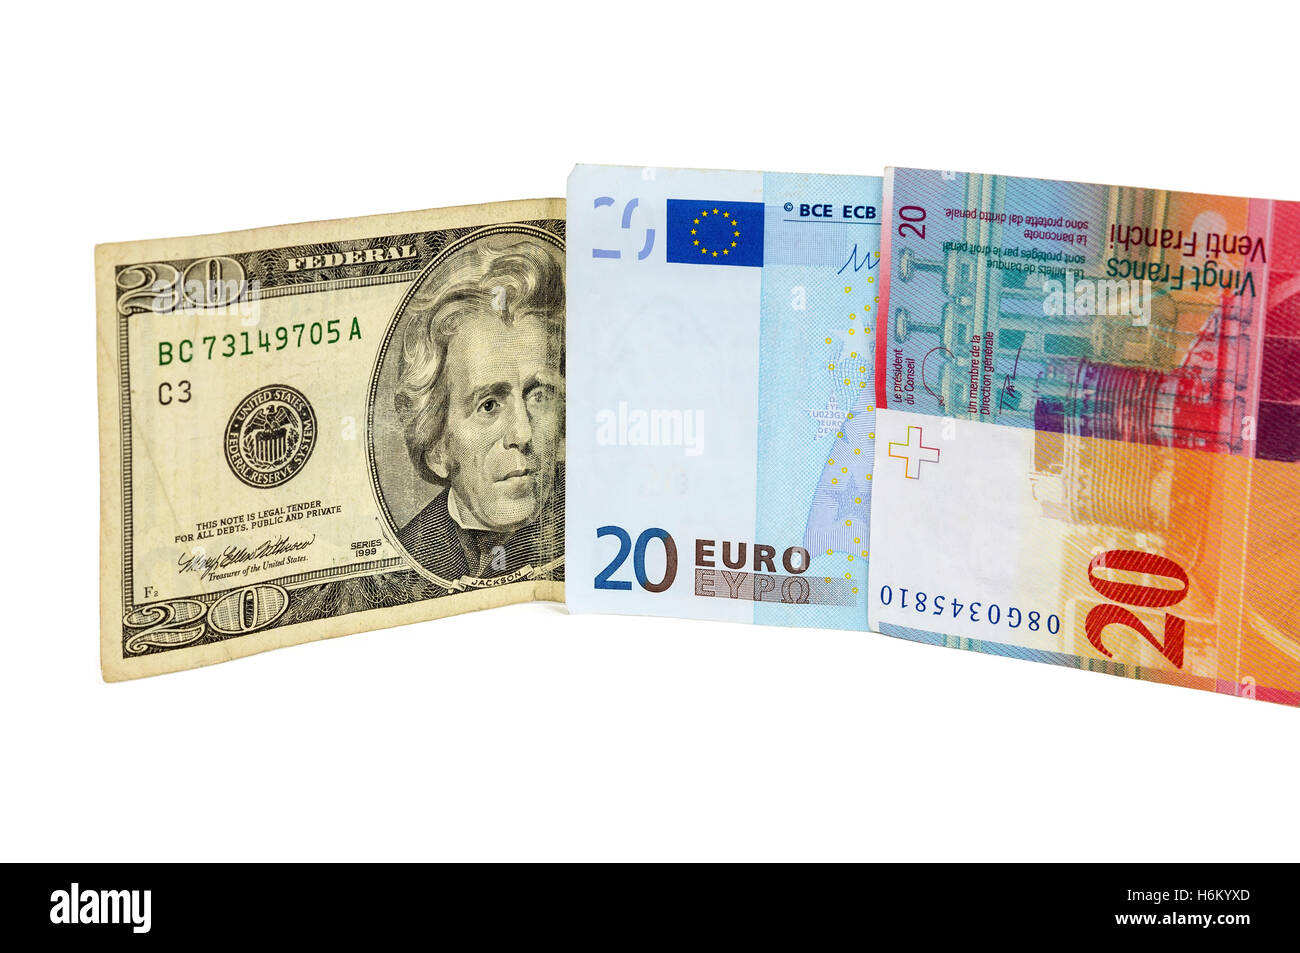 Banknotes Of 20 Dollars Euro And Swiss Franc Isolated On White Background With Clipping Path